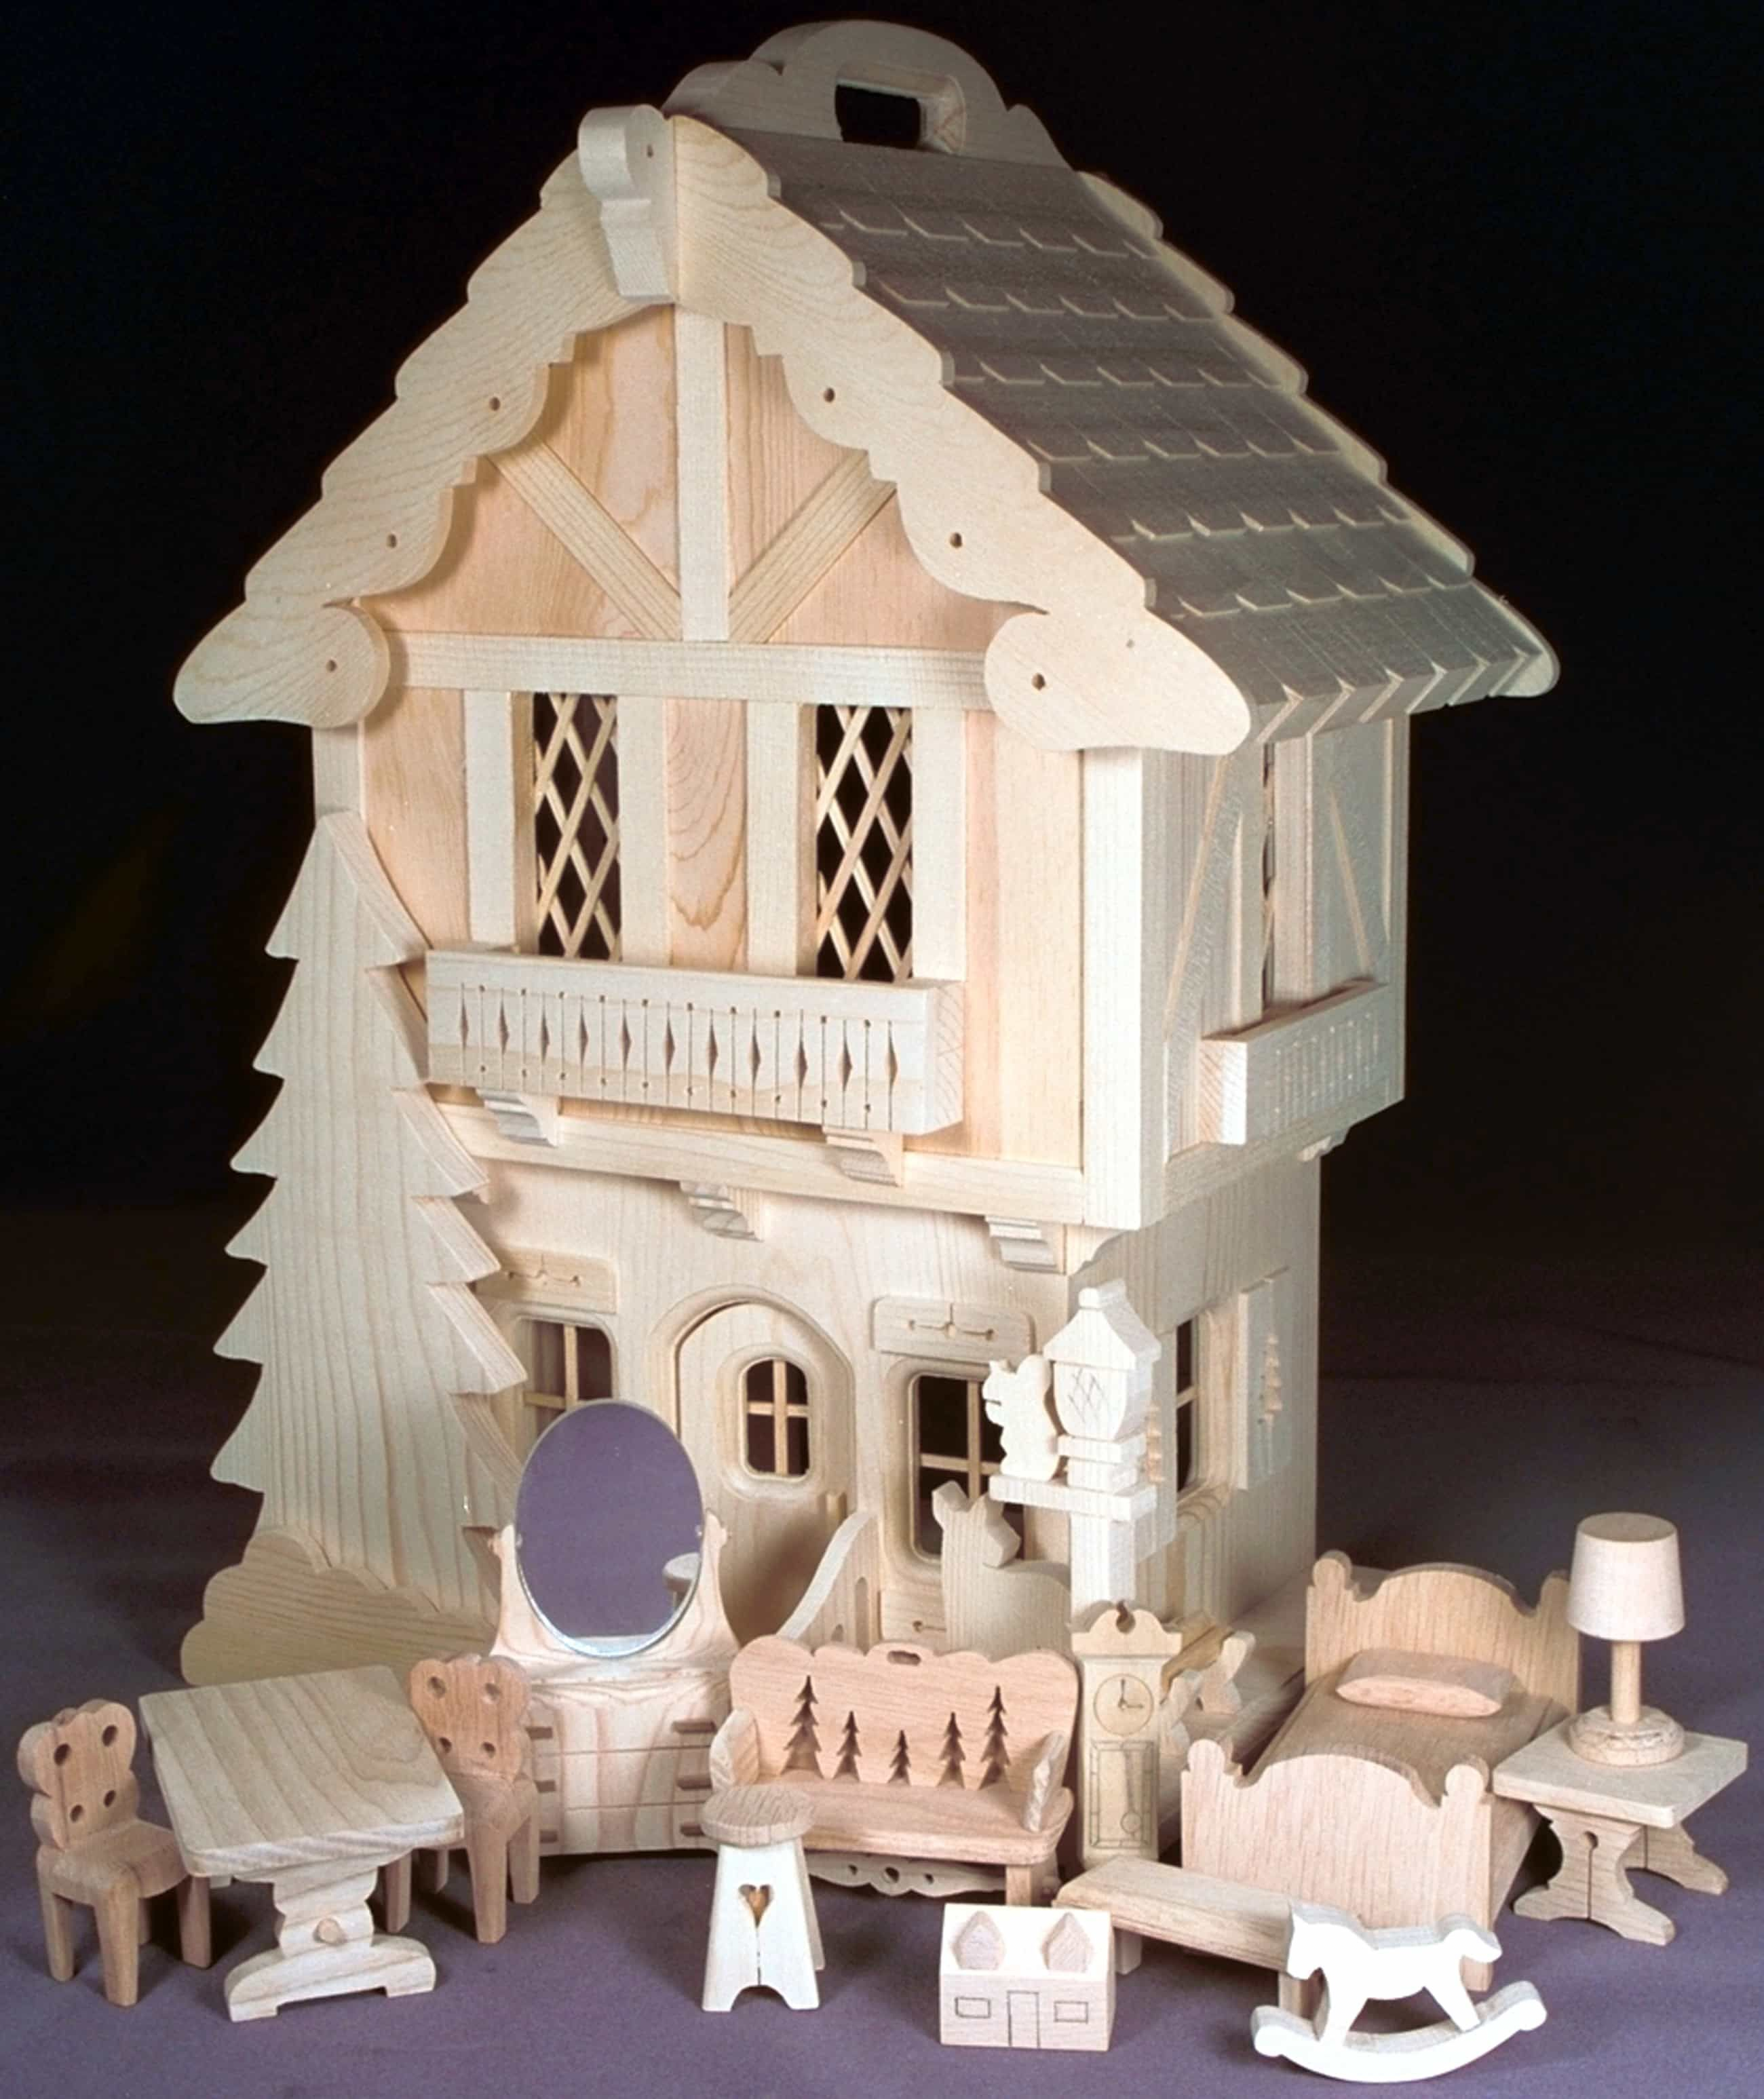 Elegant Good Woods 0276. Woodworking Plans Bargain, House With Furniture.